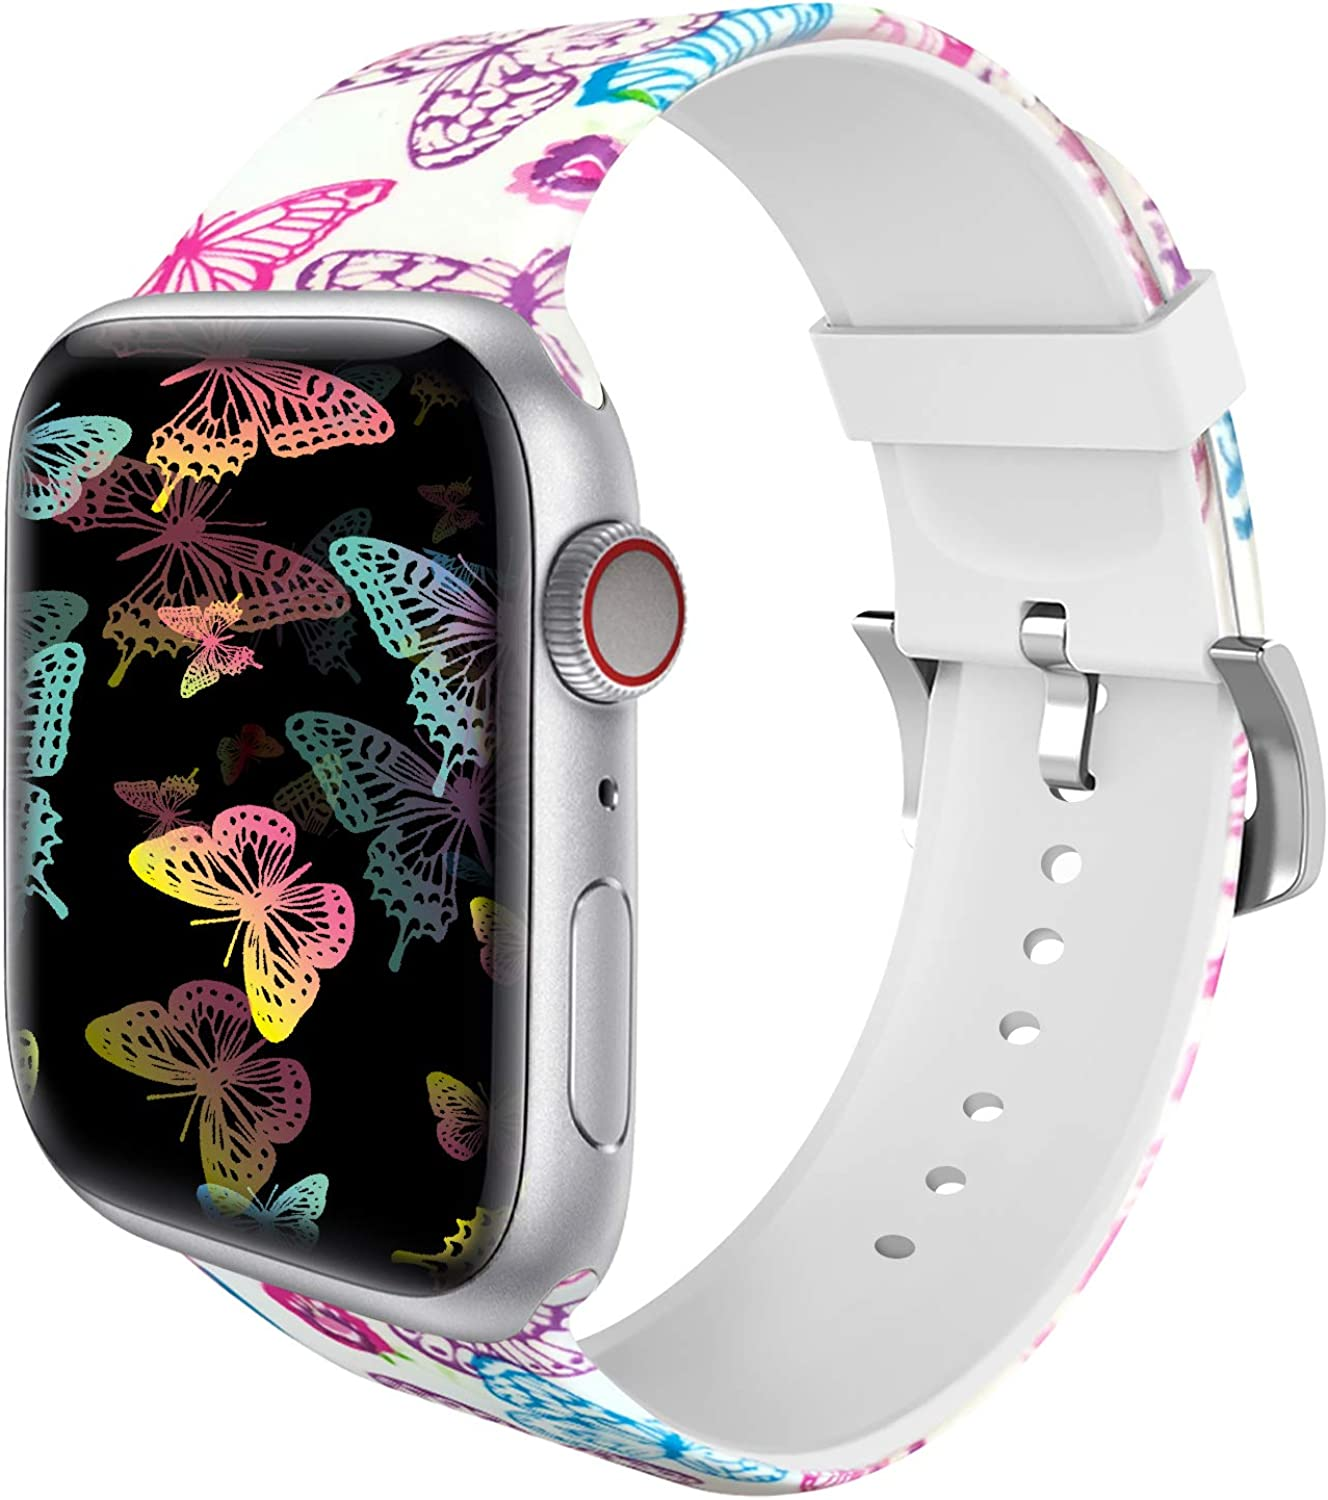 MITERV Compatible with Apple Watch Band 38mm 40mm 42mm 44mm Soft Silicone Fadeless Pattern Printed Replacement Bands for iWatch Series 6,SE,5,4,3,2,1